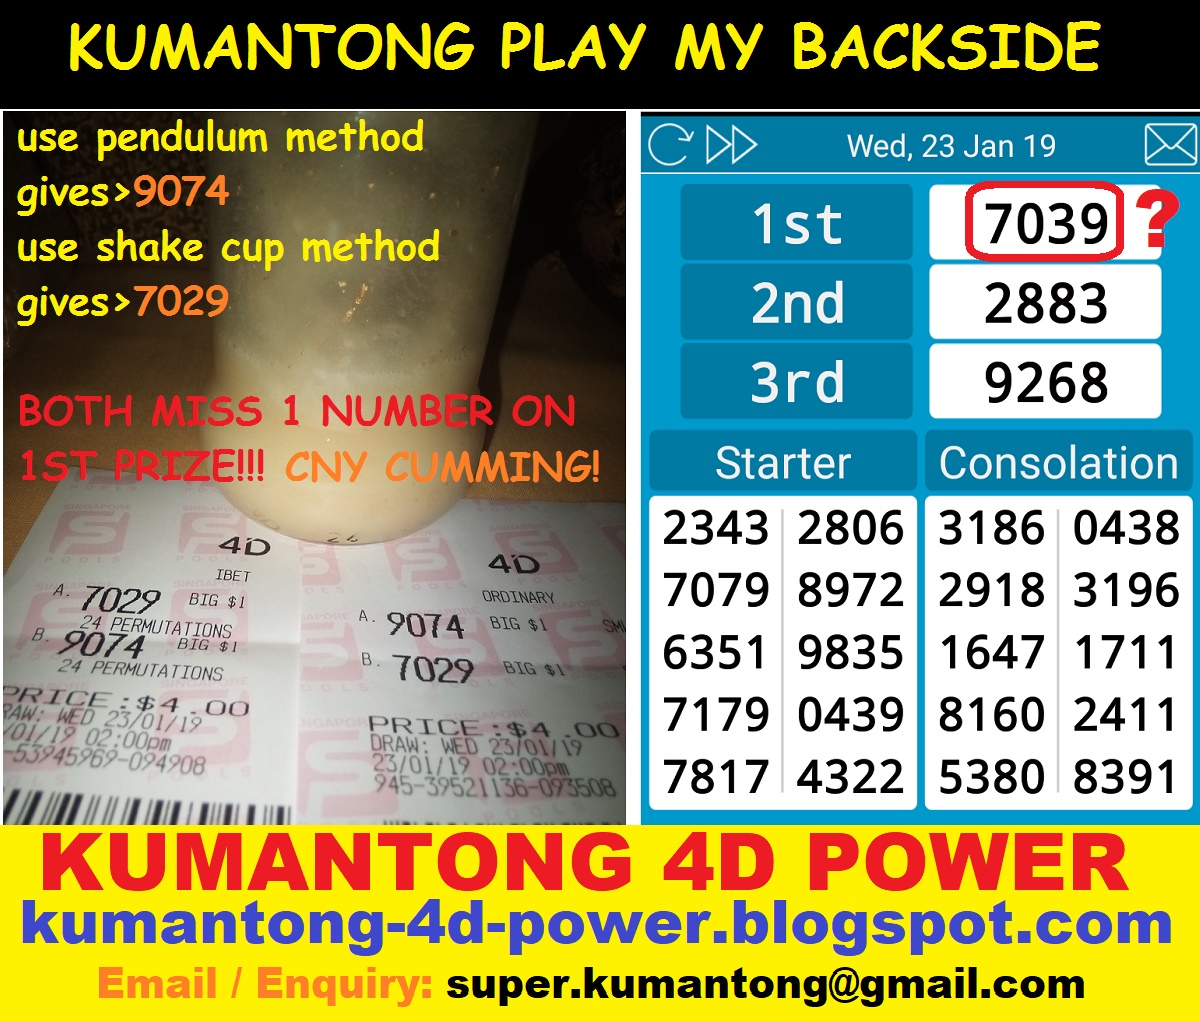 KUMANTONG 4D POWER: Miss 1 number on TOP 3 Prize again - Win no